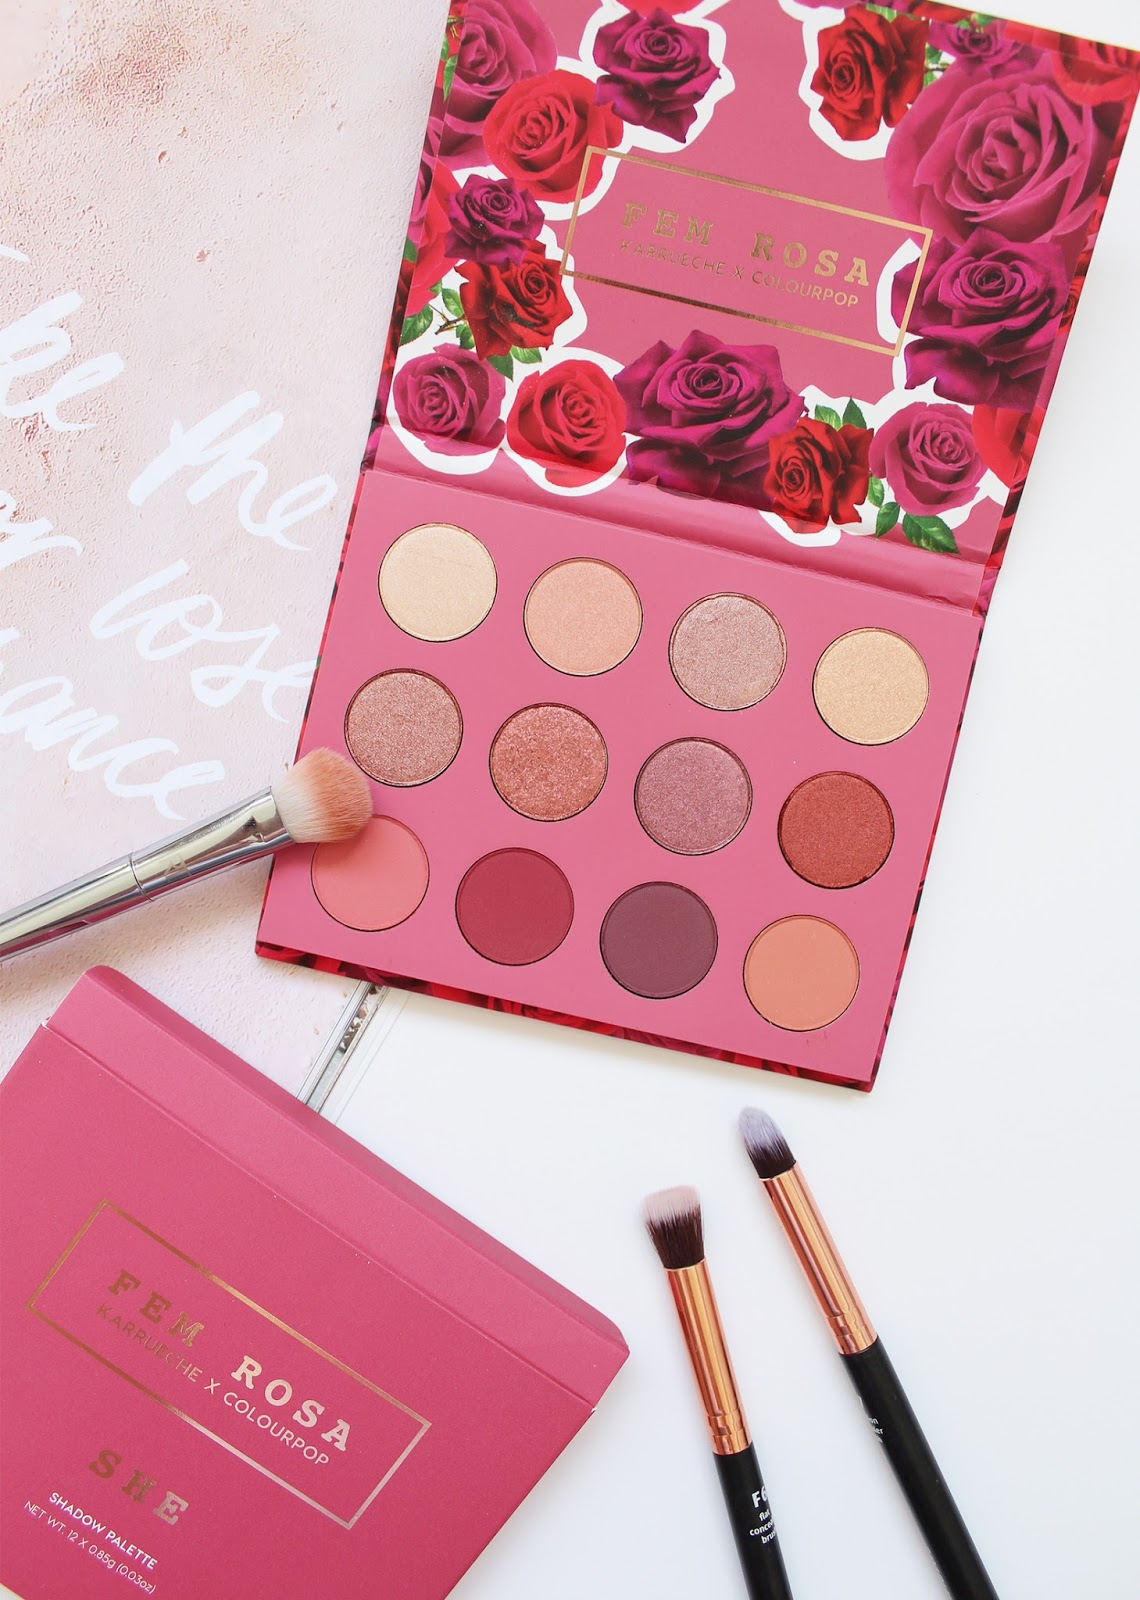 COLOURPOP | Fem Rosa She Pressed Shadow Palette - Review + Swatches - CassandraMyee